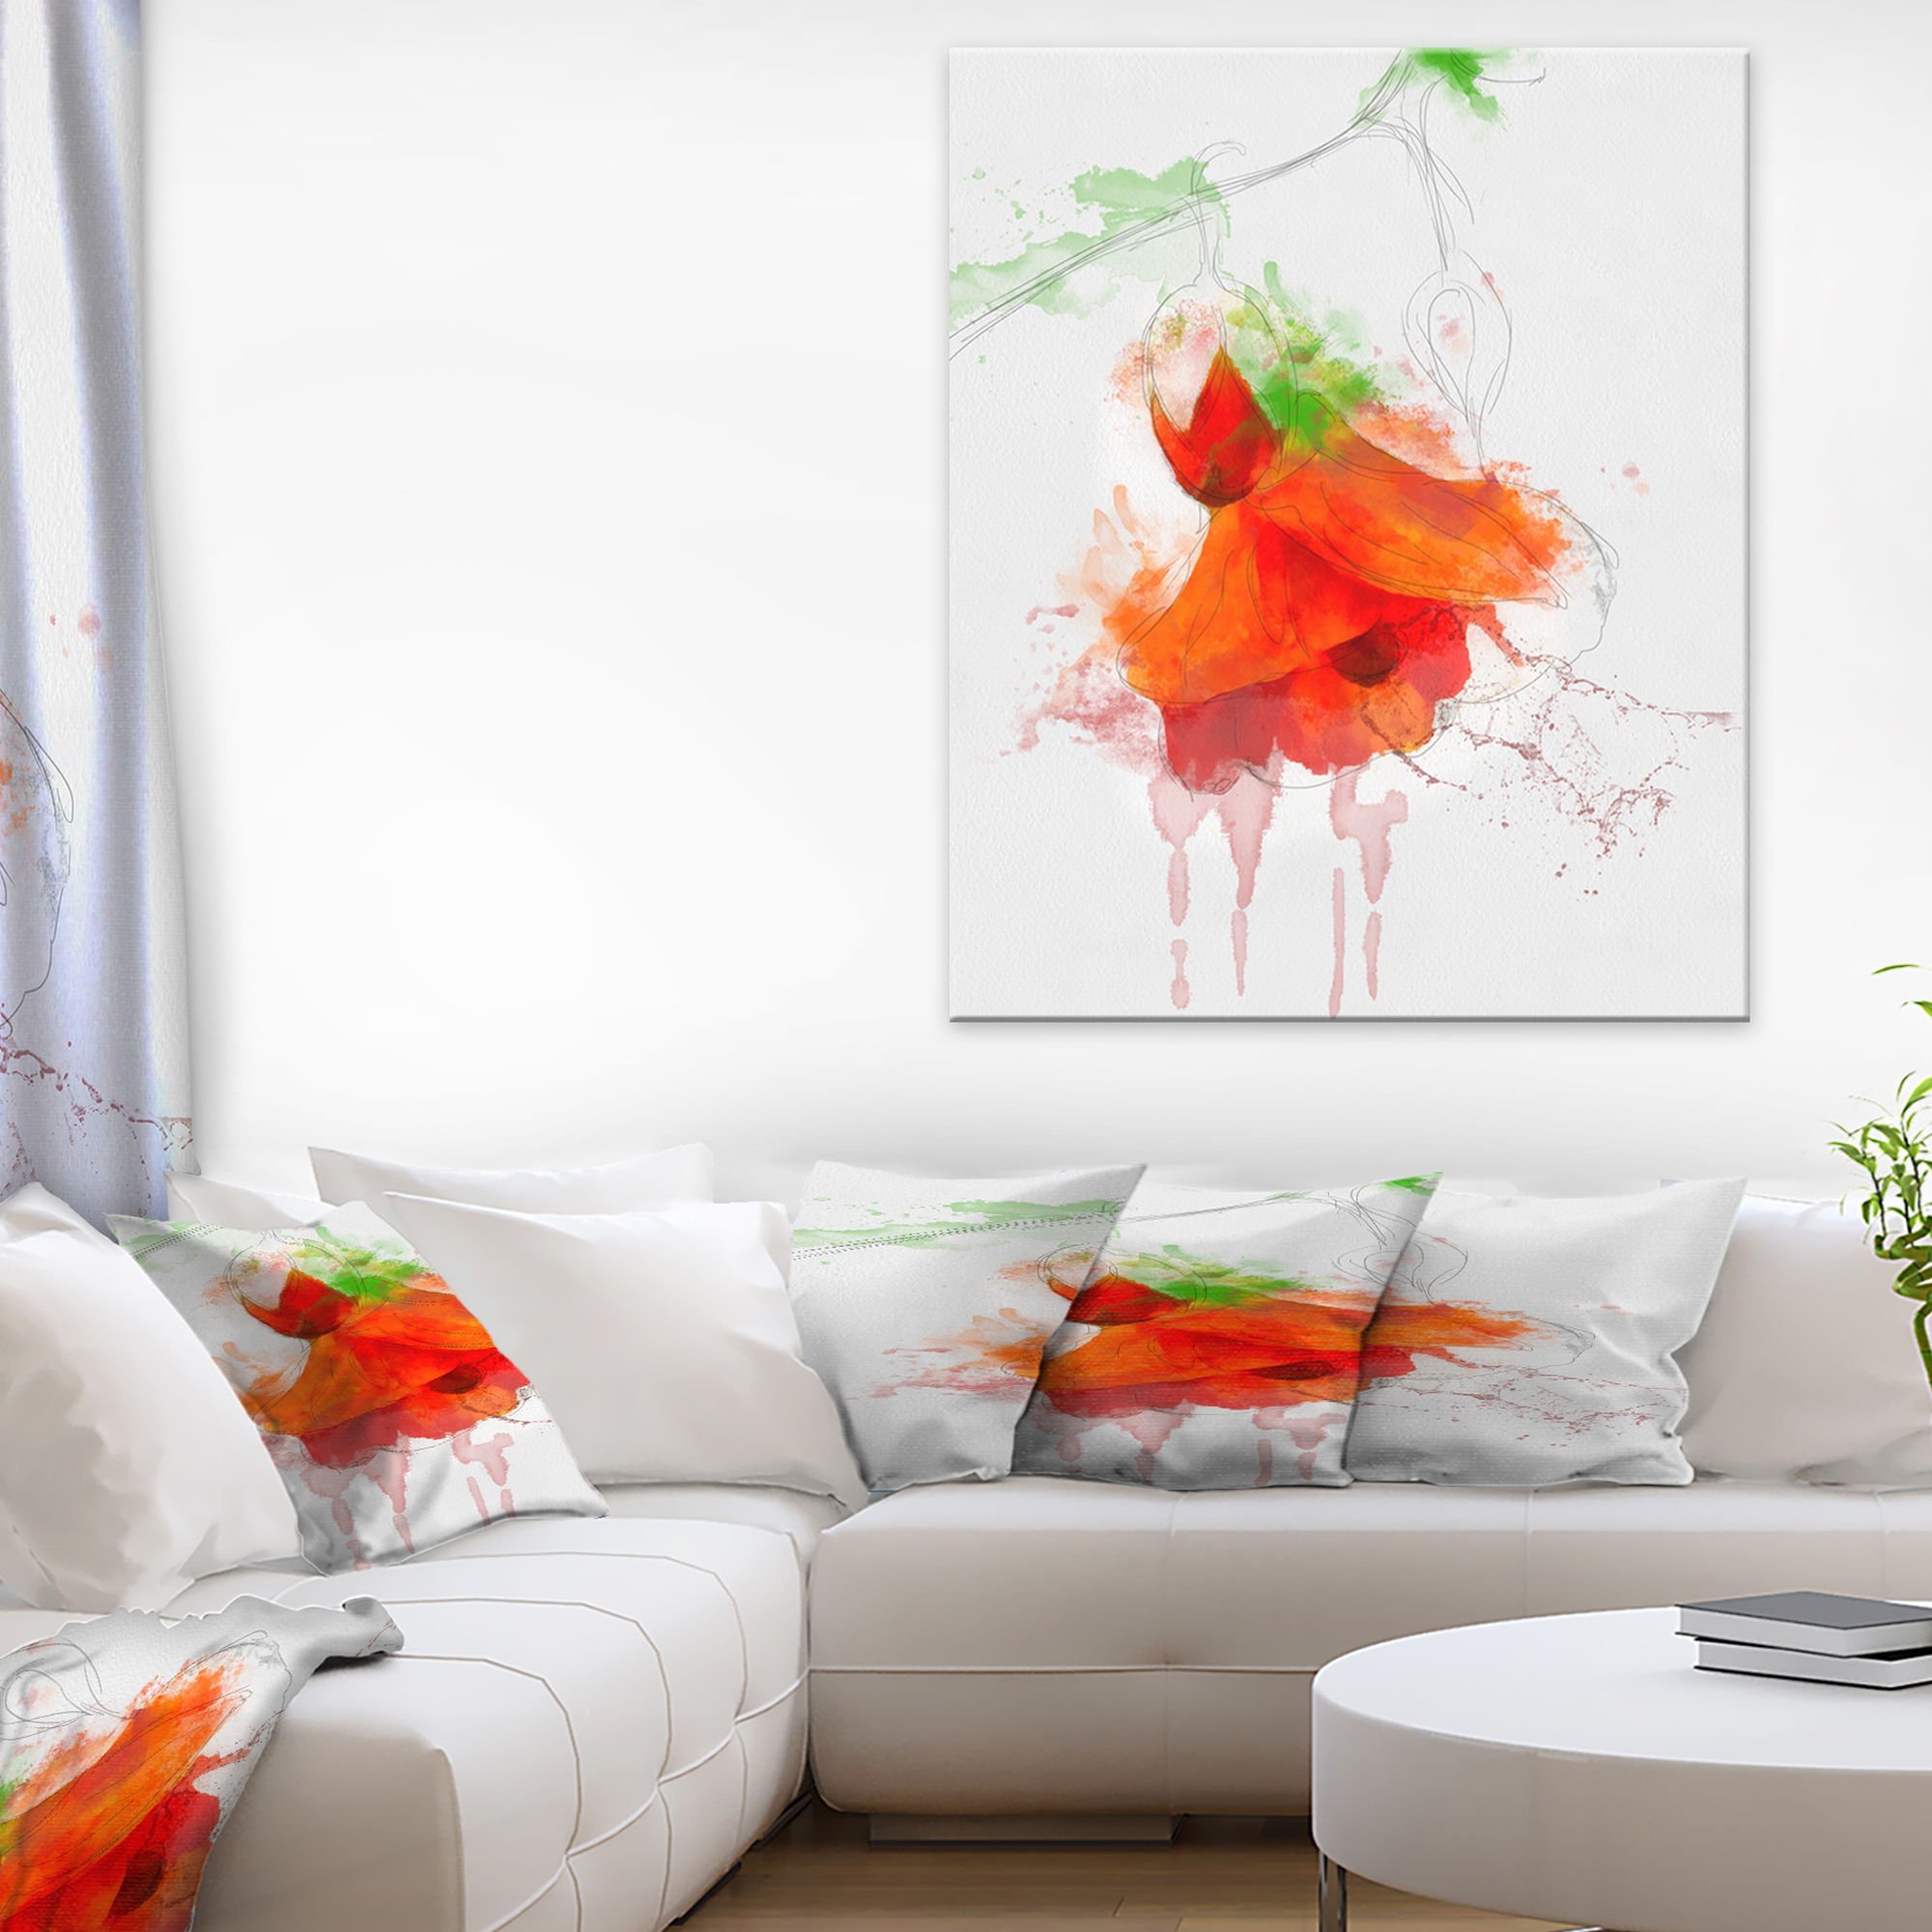 Red Rose Watercolor Illustration - Floral Canvas Art Print - image 3 of 3